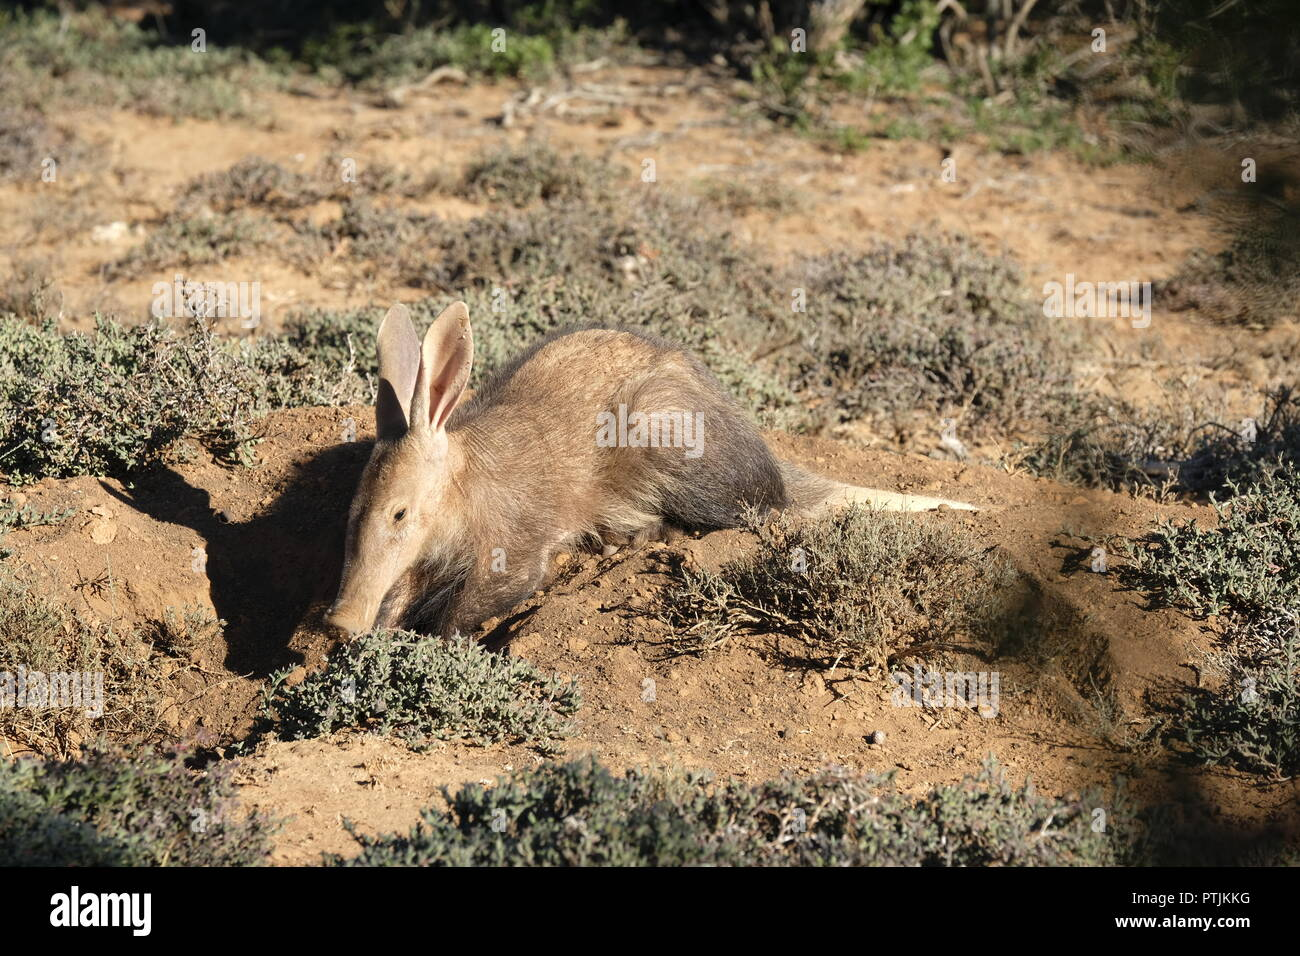 aardvark on burrow - early winter morning - Stock Image